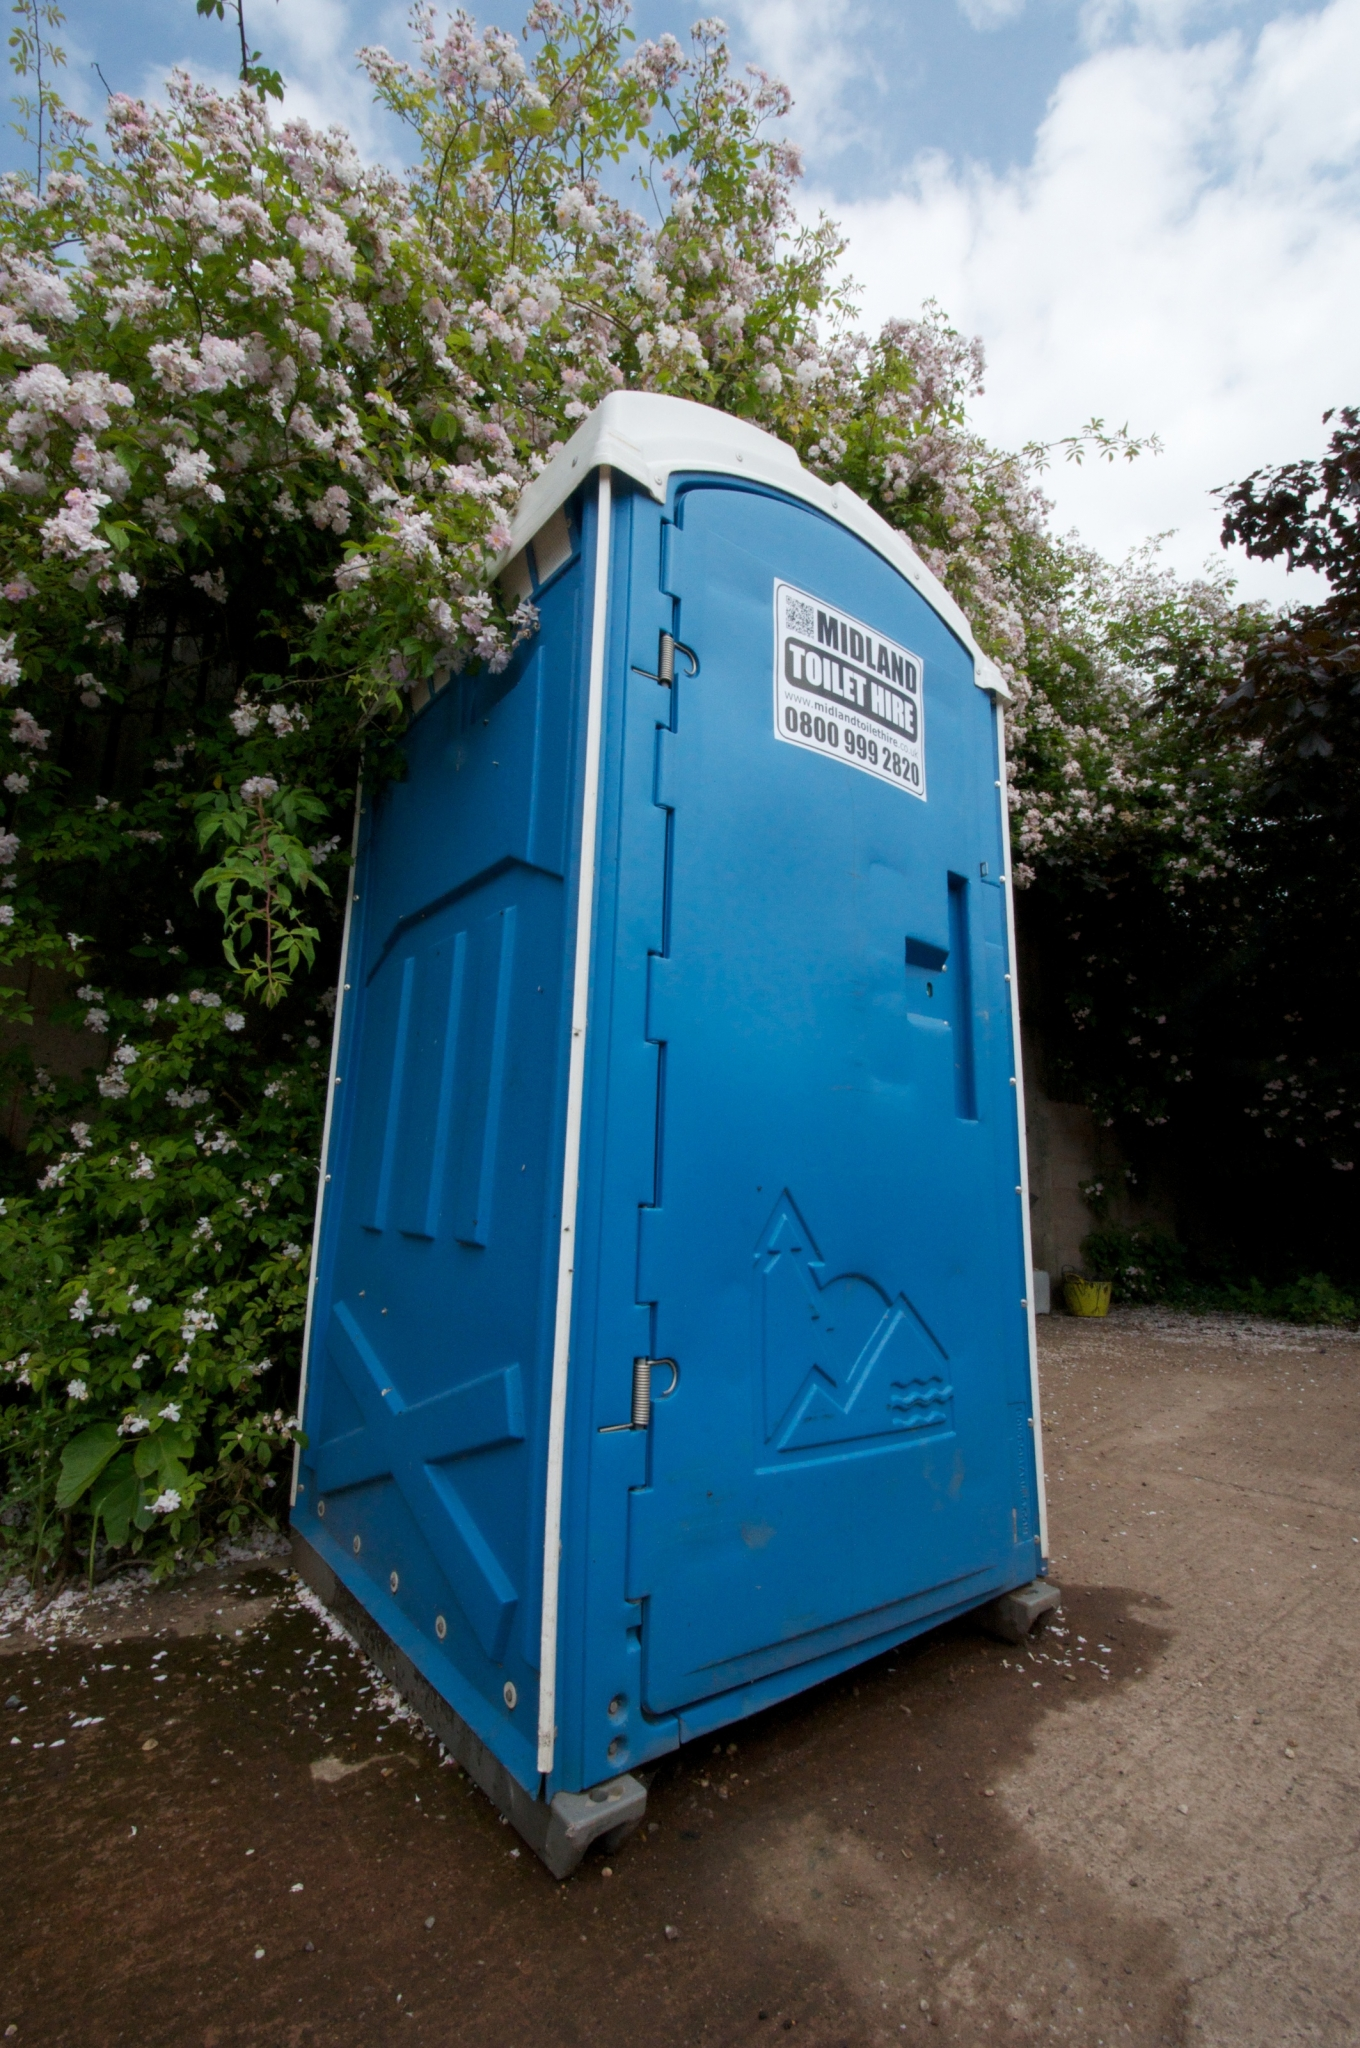 Midlands Toilet Hire